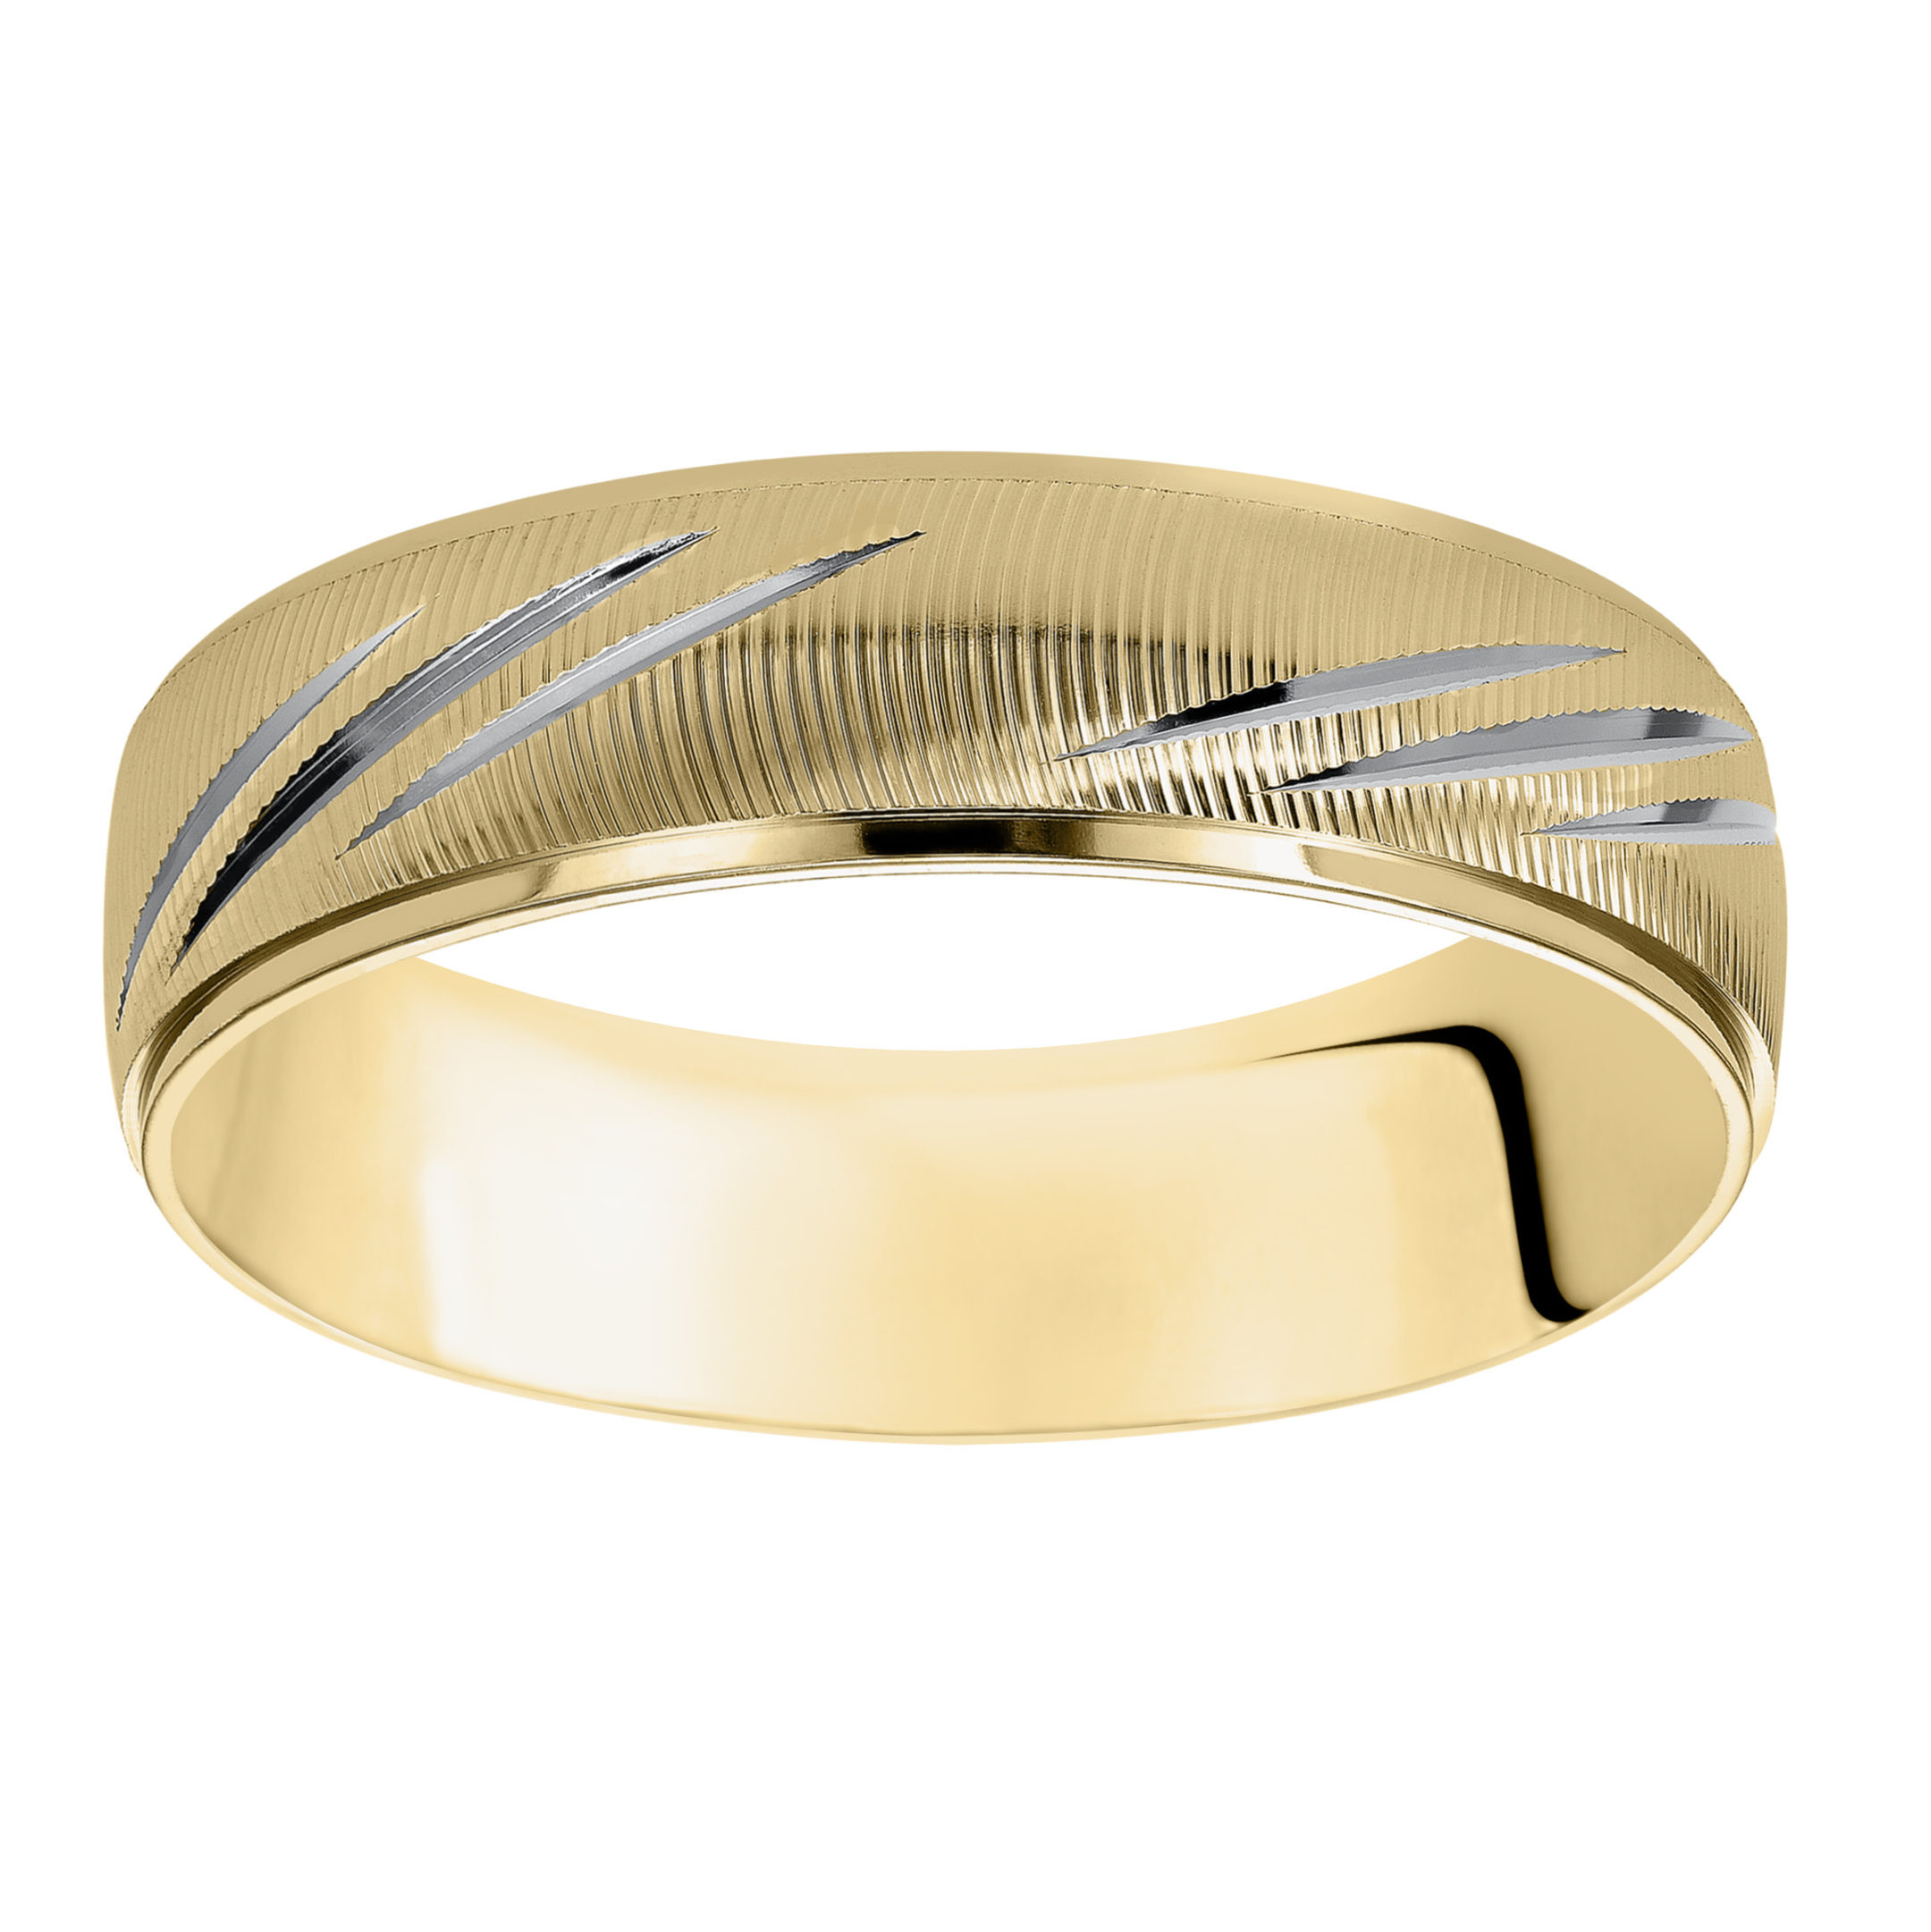 Vertical Fine Line Finish & Round Edges Wedding Band in 14k Yellow Gold & Rhodium - flat up view